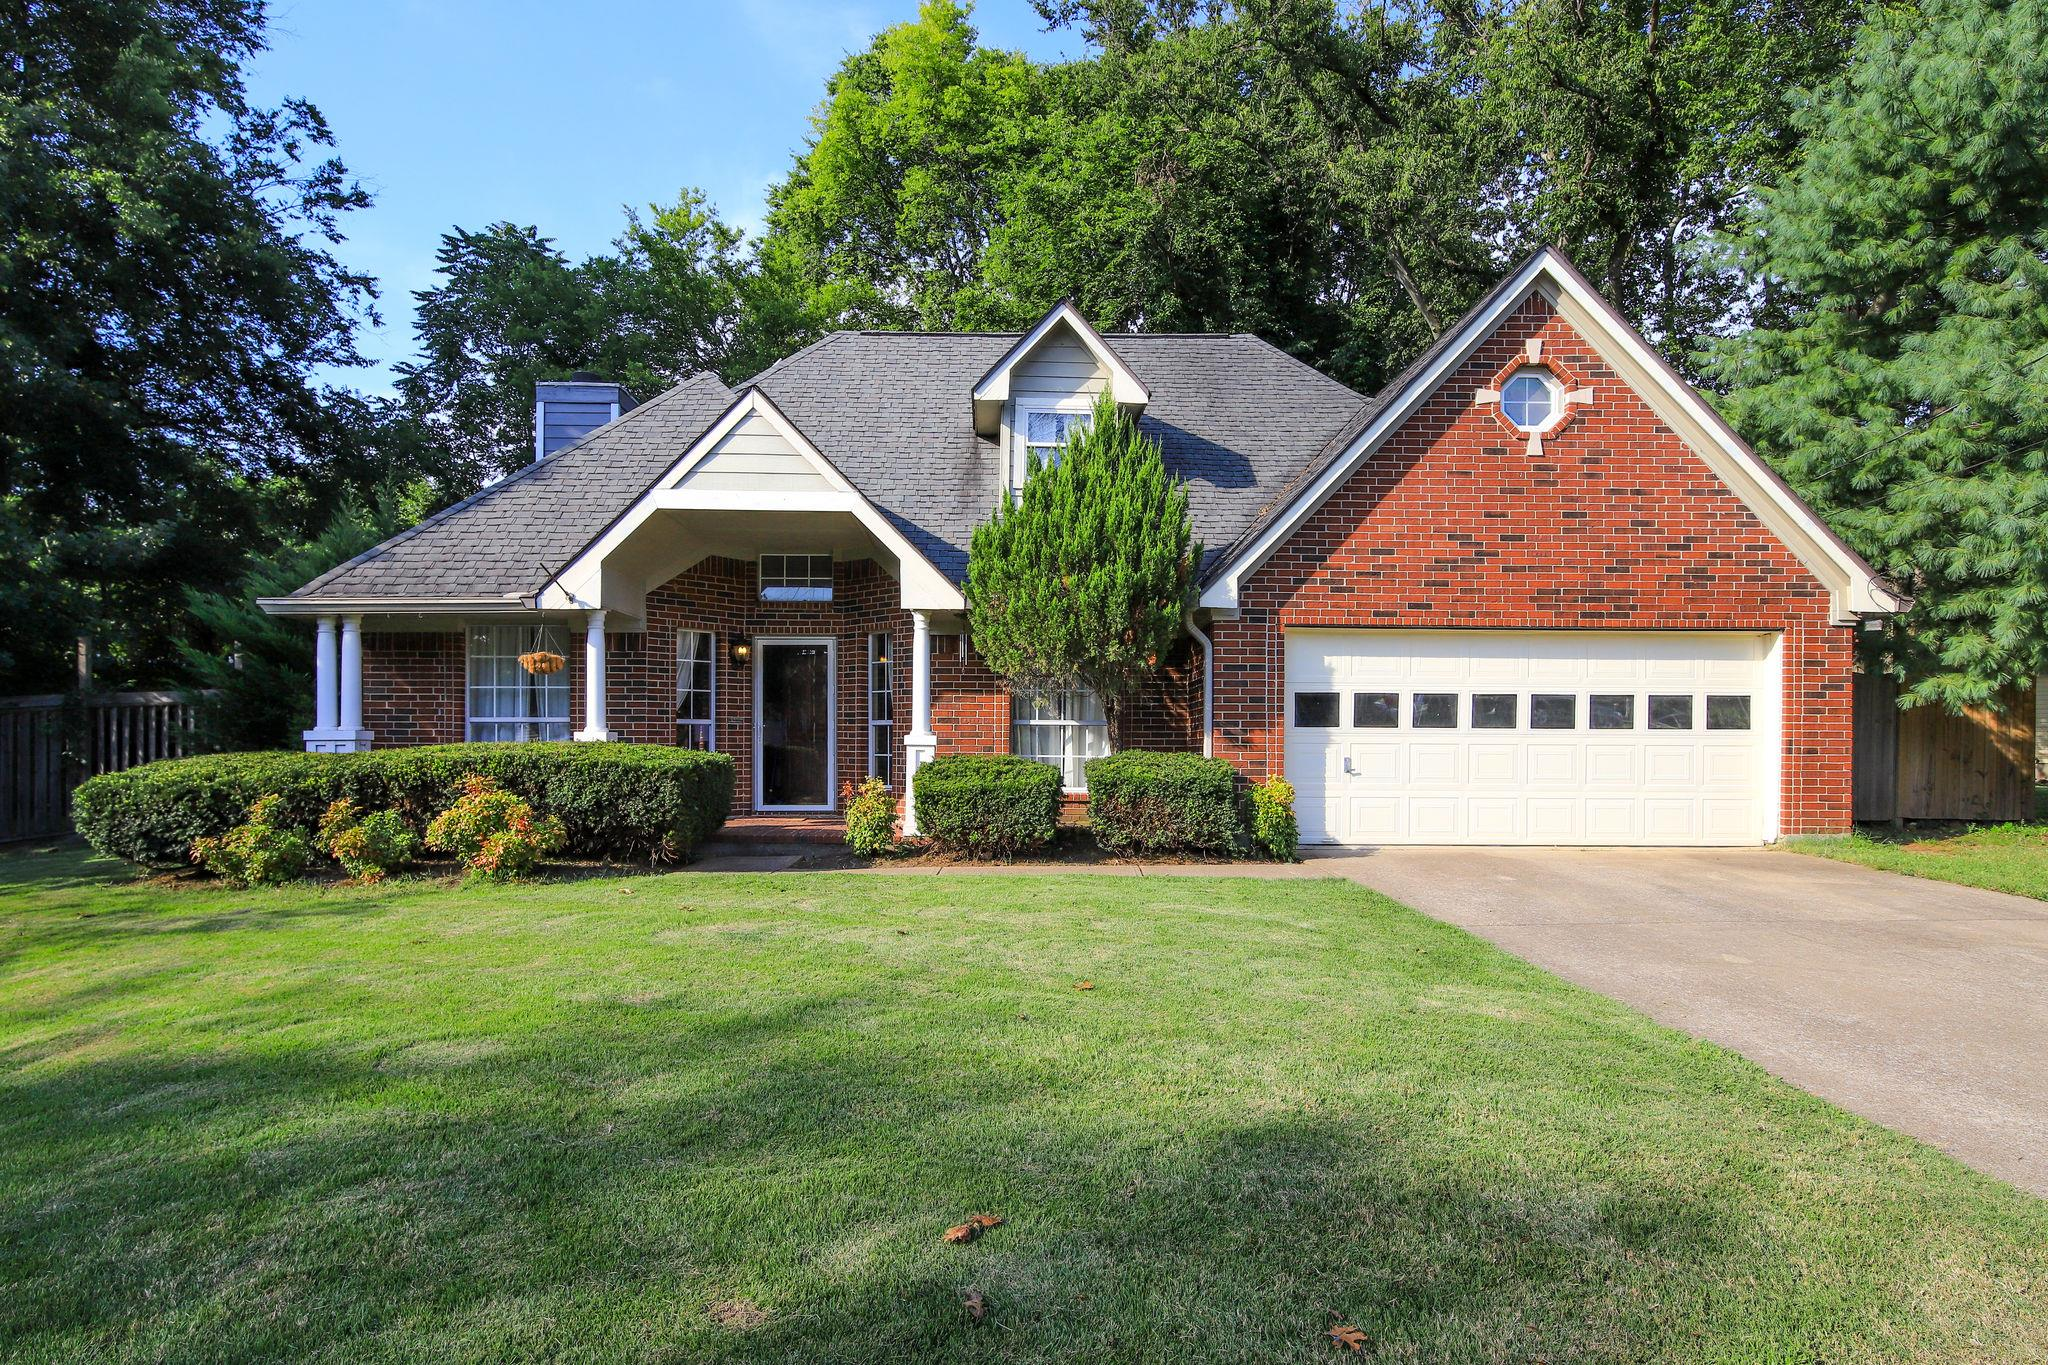 604 Pebblestone Ct, Old Hickory, TN 37138 - Old Hickory, TN real estate listing